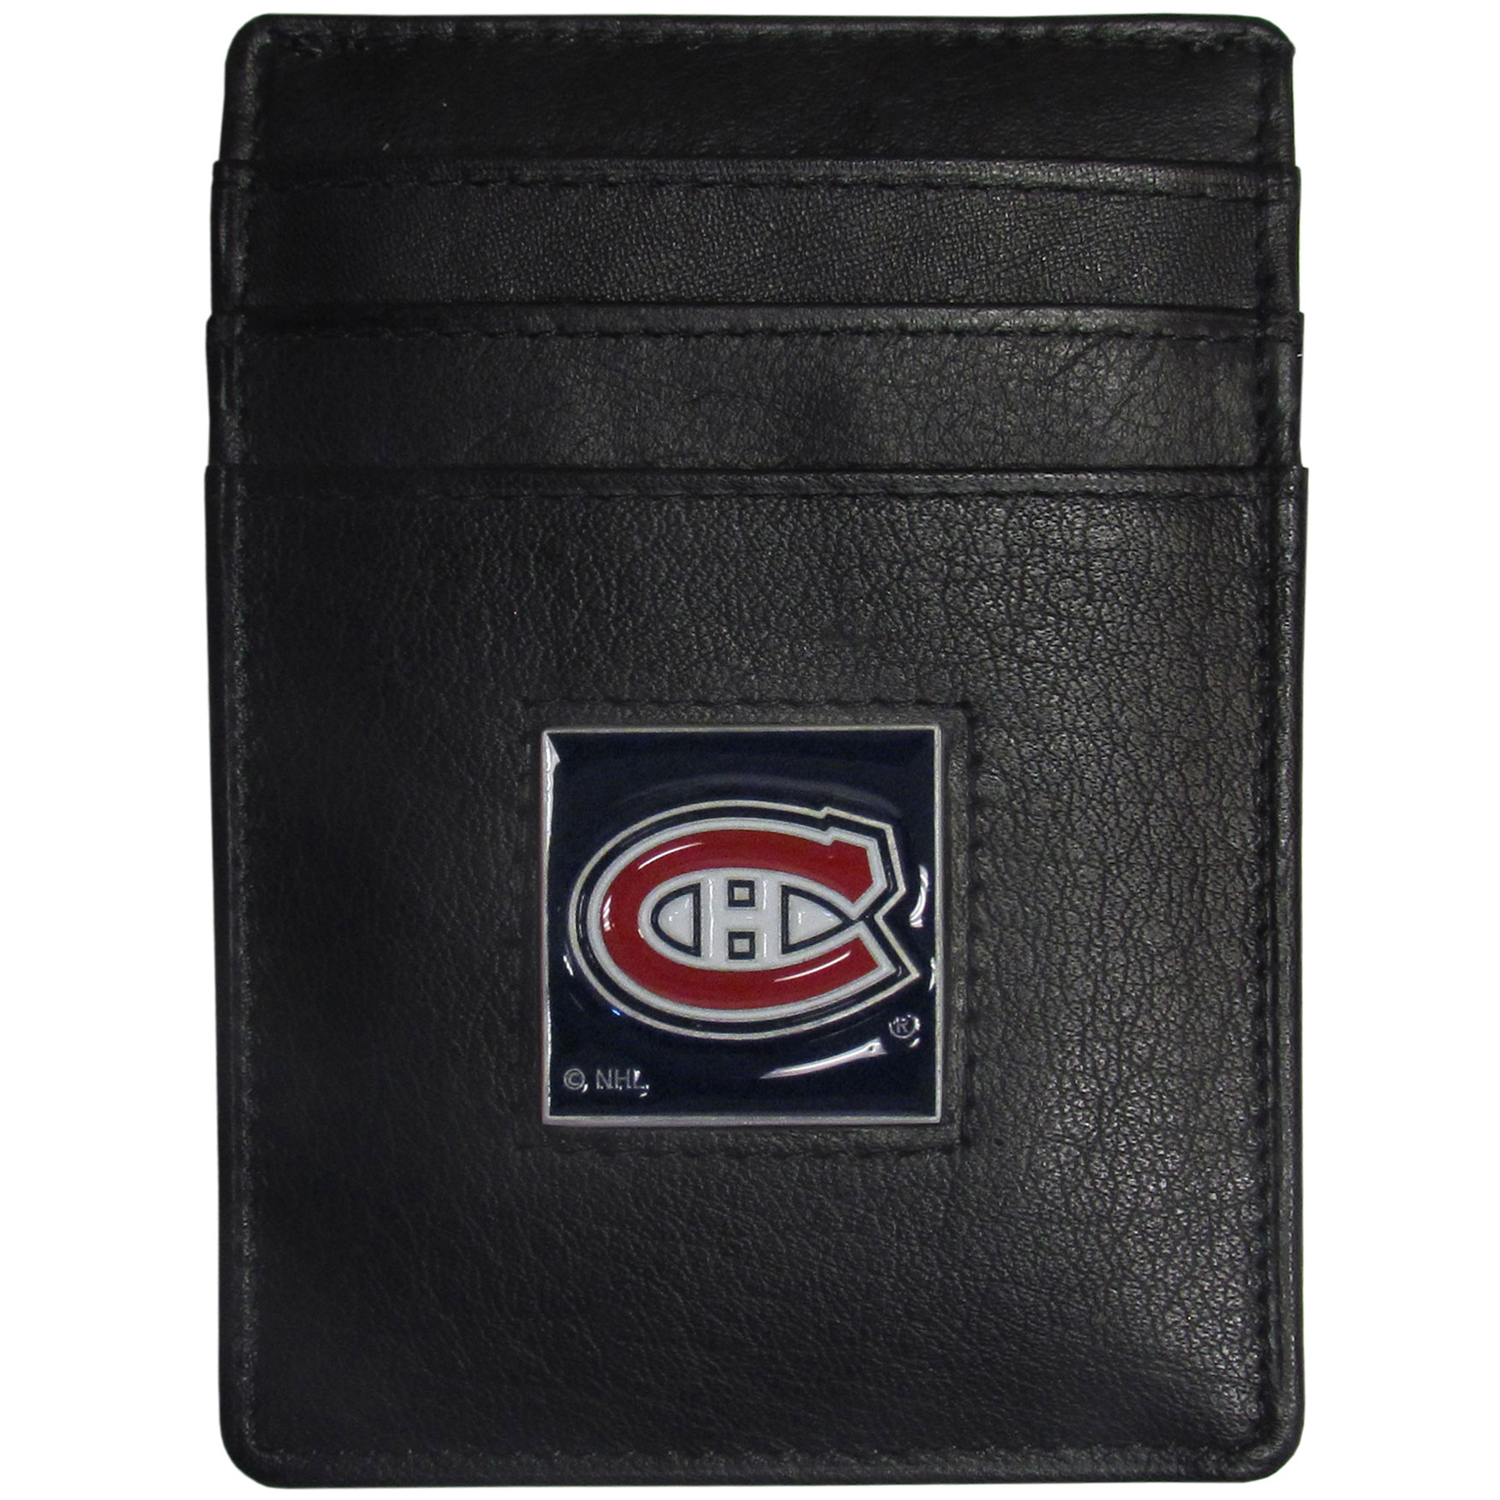 Montreal Canadiens® Leather Money Clip/Cardholder - Our officially licensed Money Clip/Card Holders won't make you choose between paper or plastic because they stow both easily. Features our sculpted and enameled Montreal Canadiens® emblem on the front of the wallet.